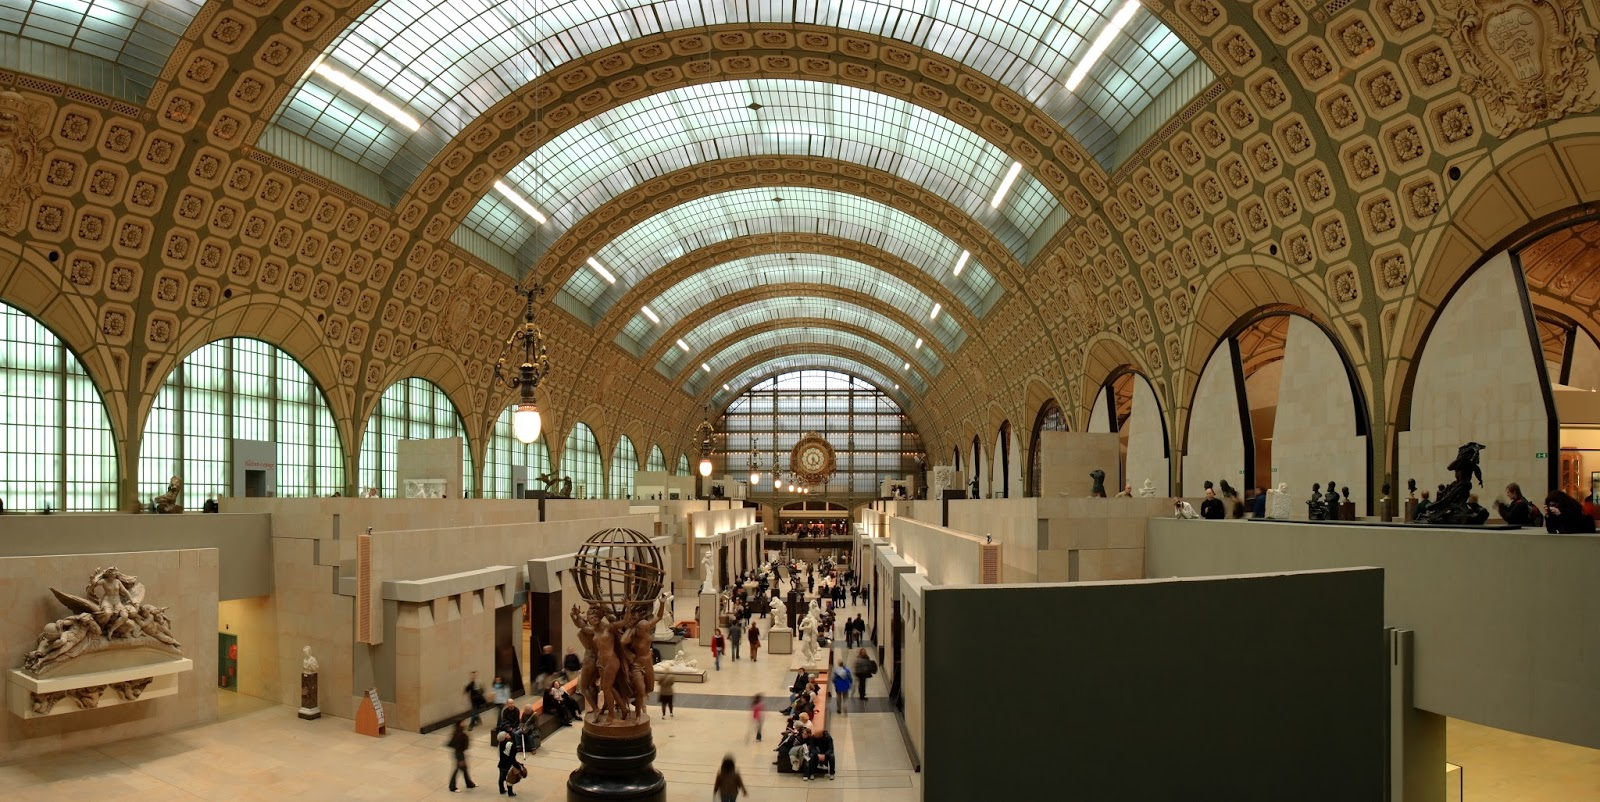 These Are The 25 Best Museums In The World - Musee D'Orsay